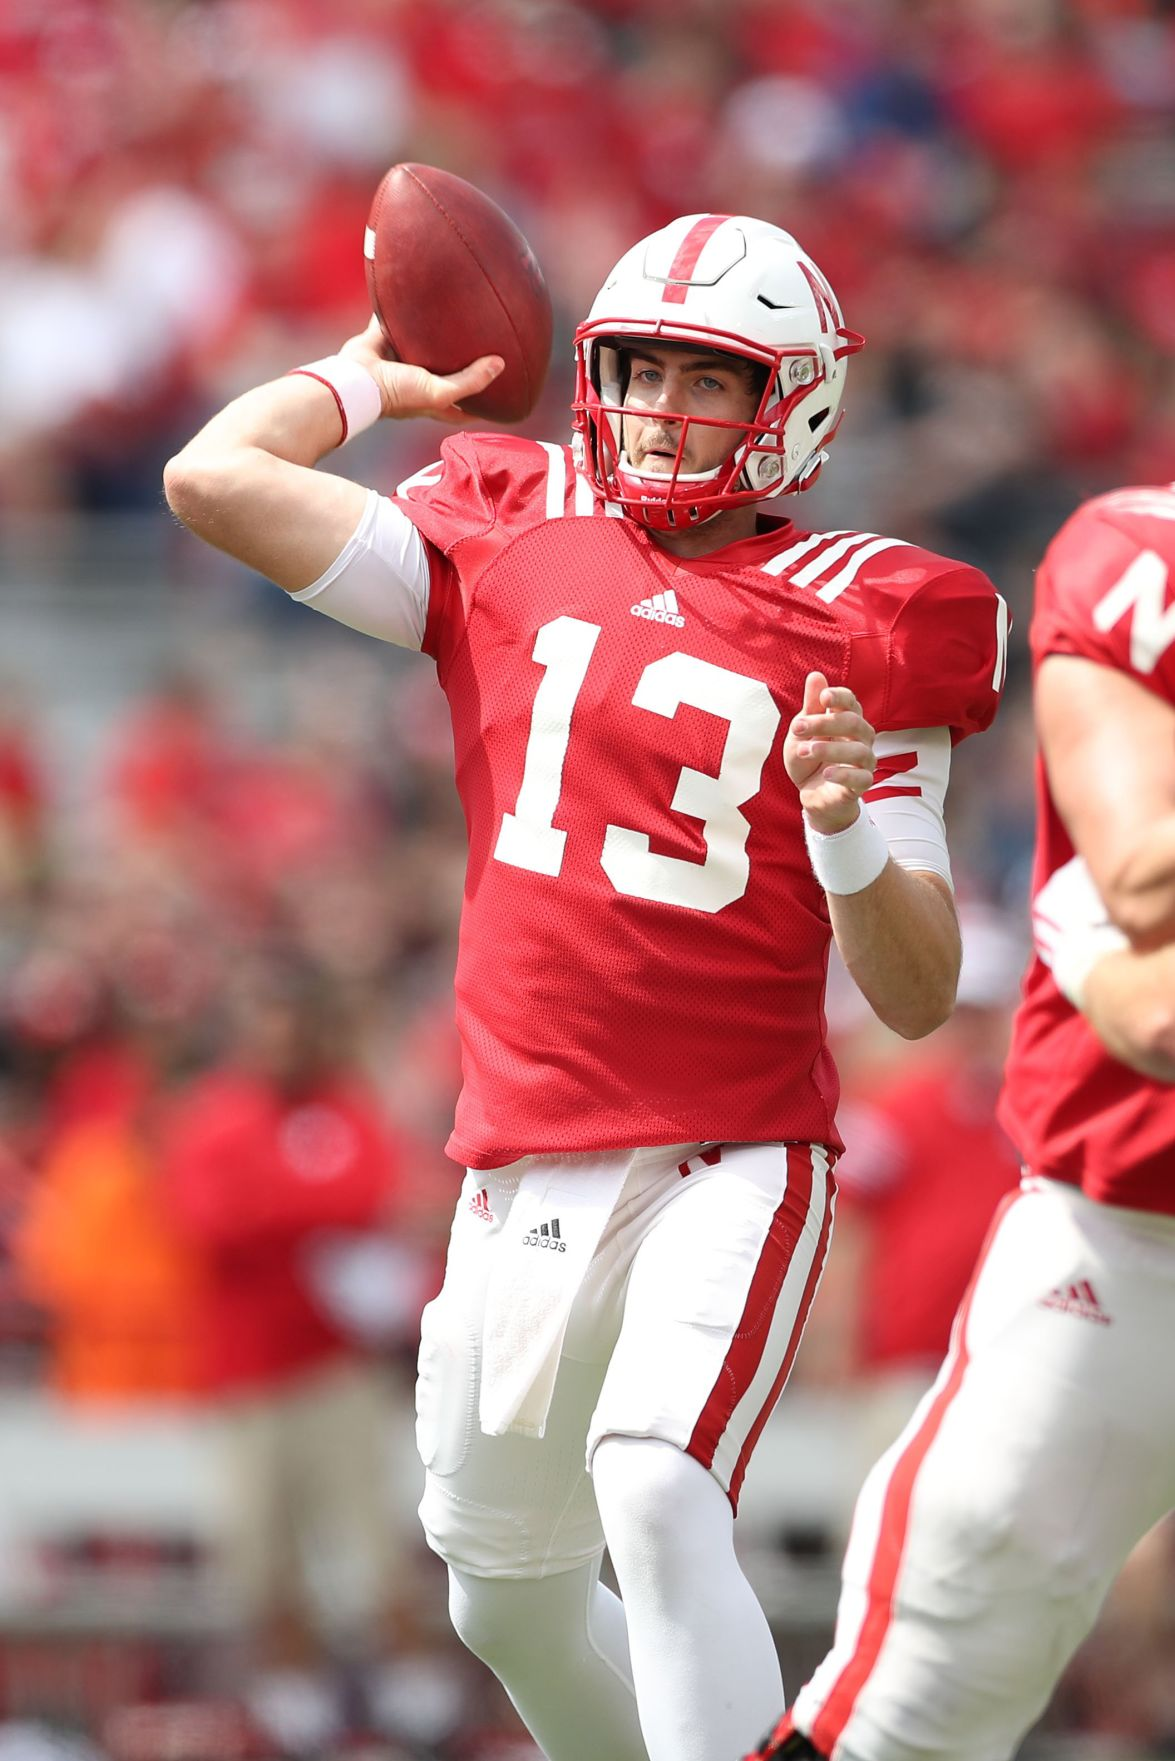 1. Tanner Lee | Big Red News | Big Ten Conference | Nebraska Football Player